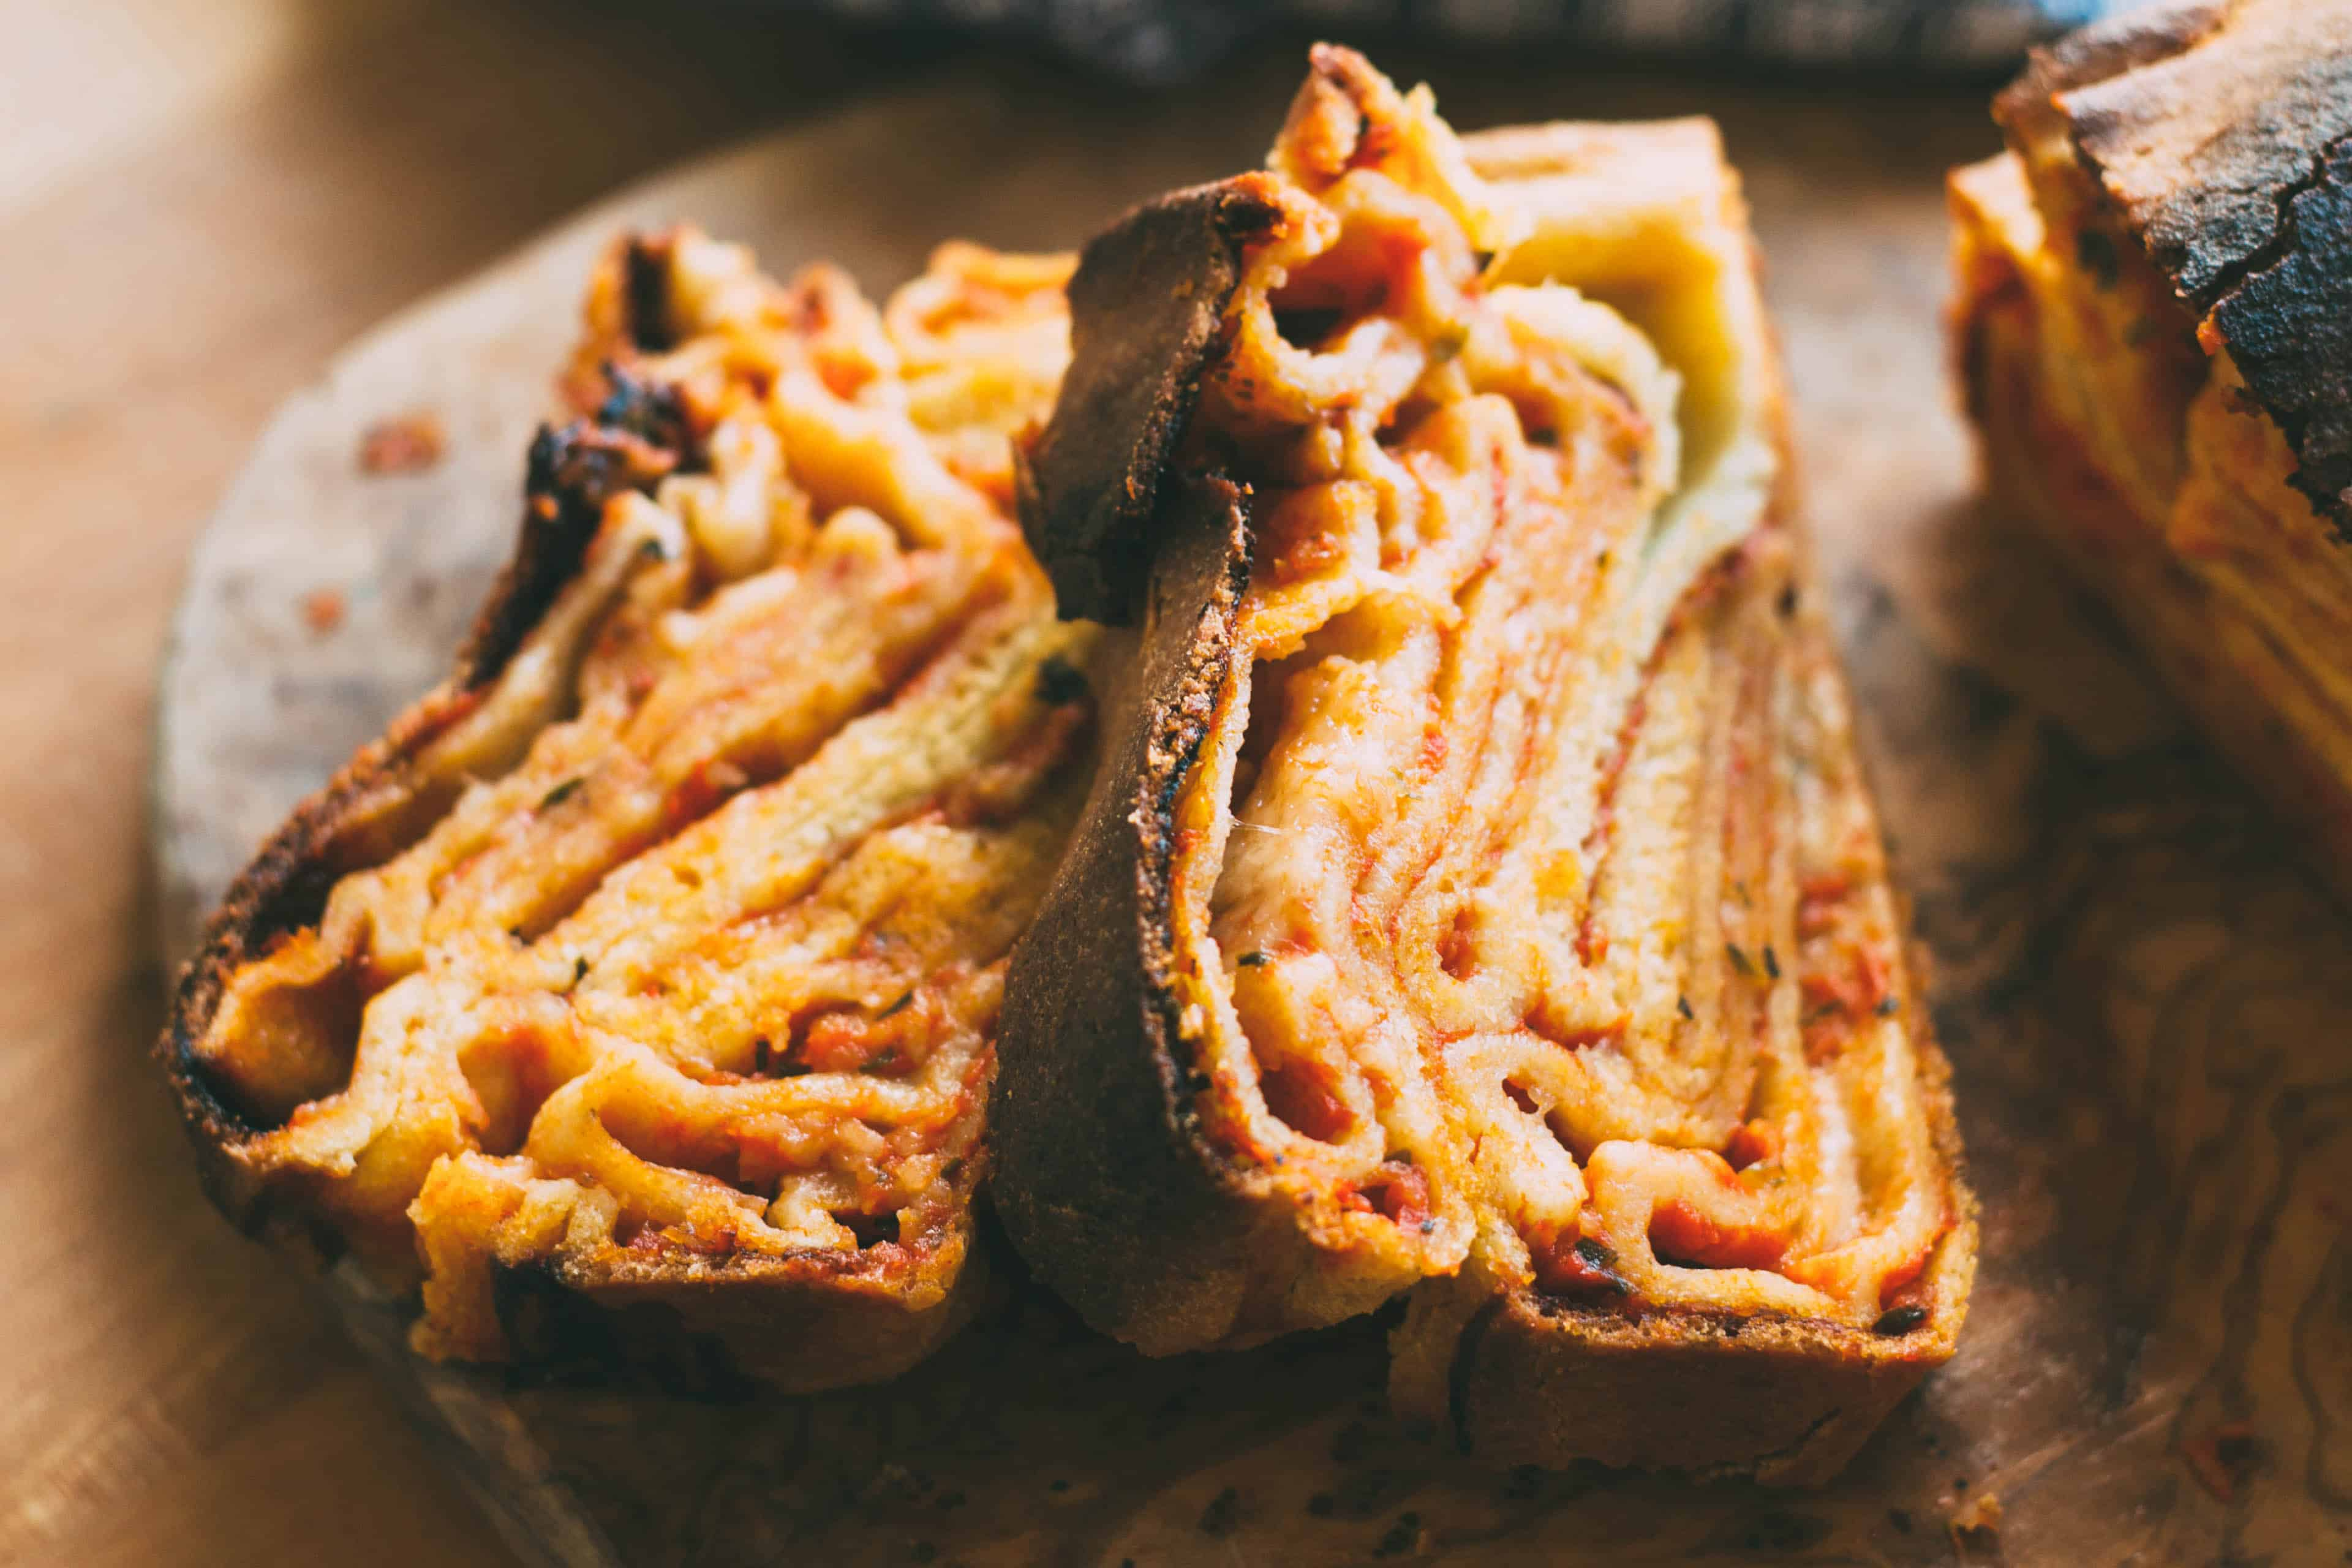 Thick slices of cooked pizza babka.